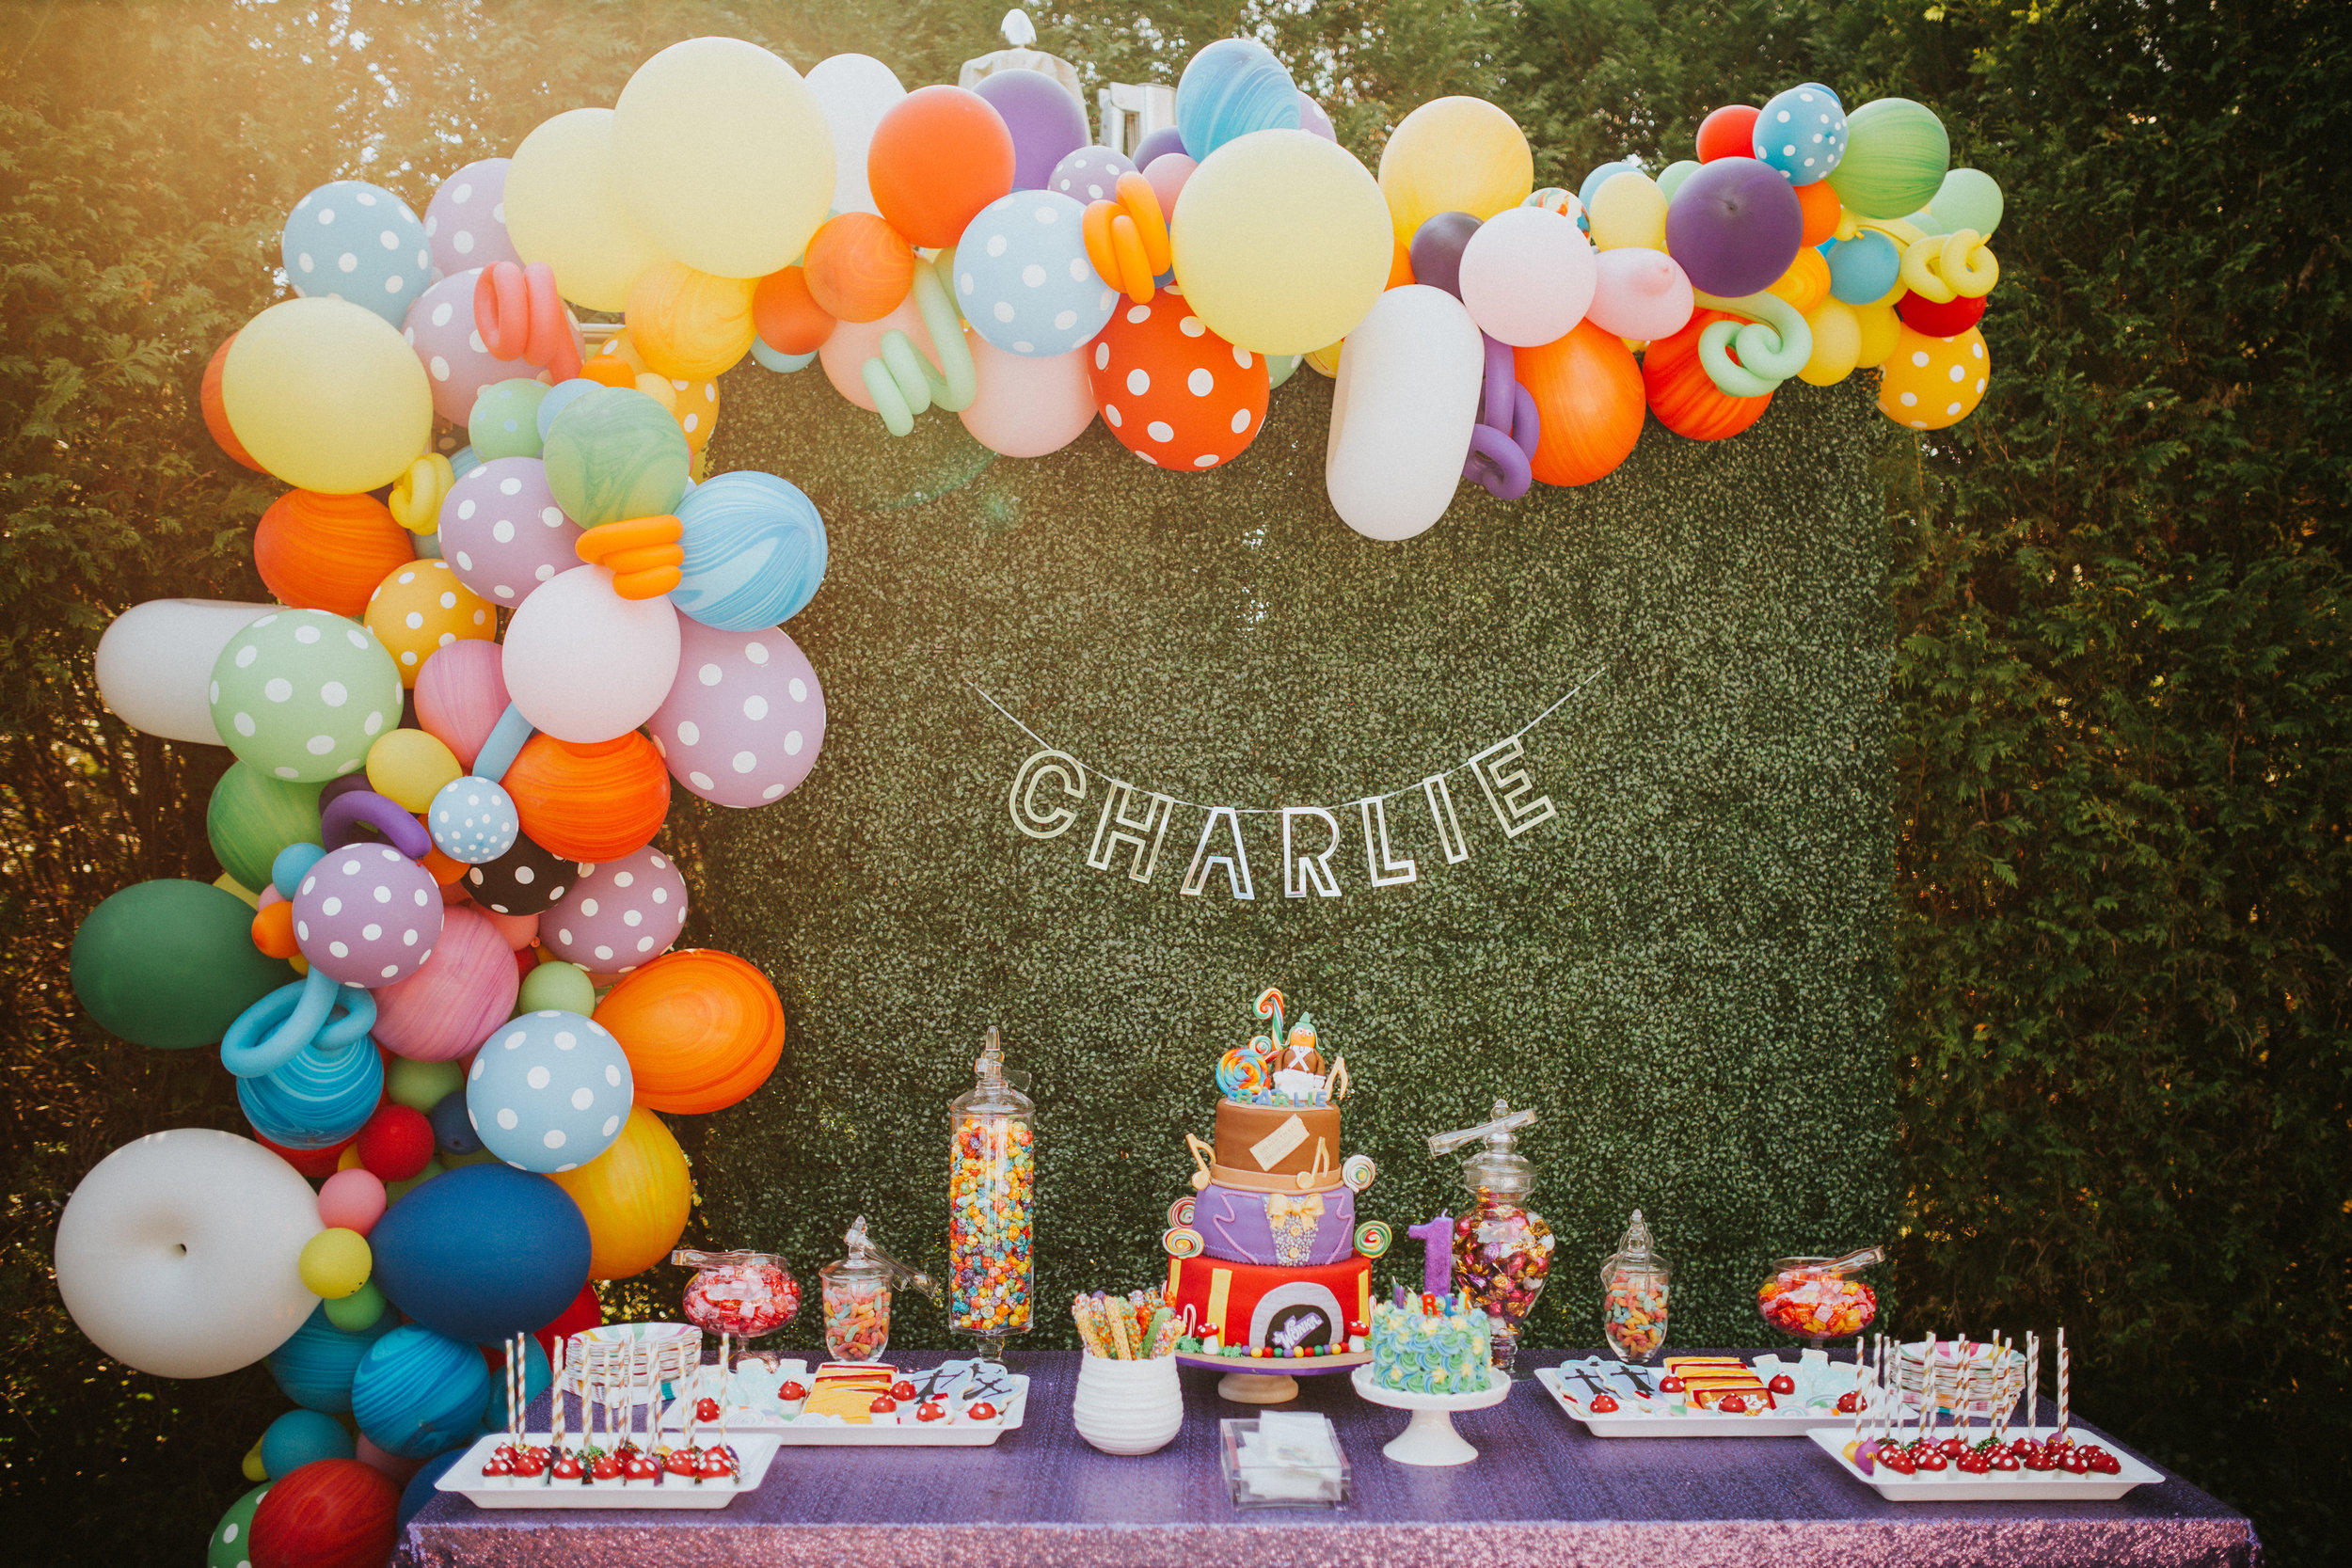 Willy Wonka Themed Birthday Party - Scarlet Plan & Design Atlanta Party Event Planners & Designers (51).jpg